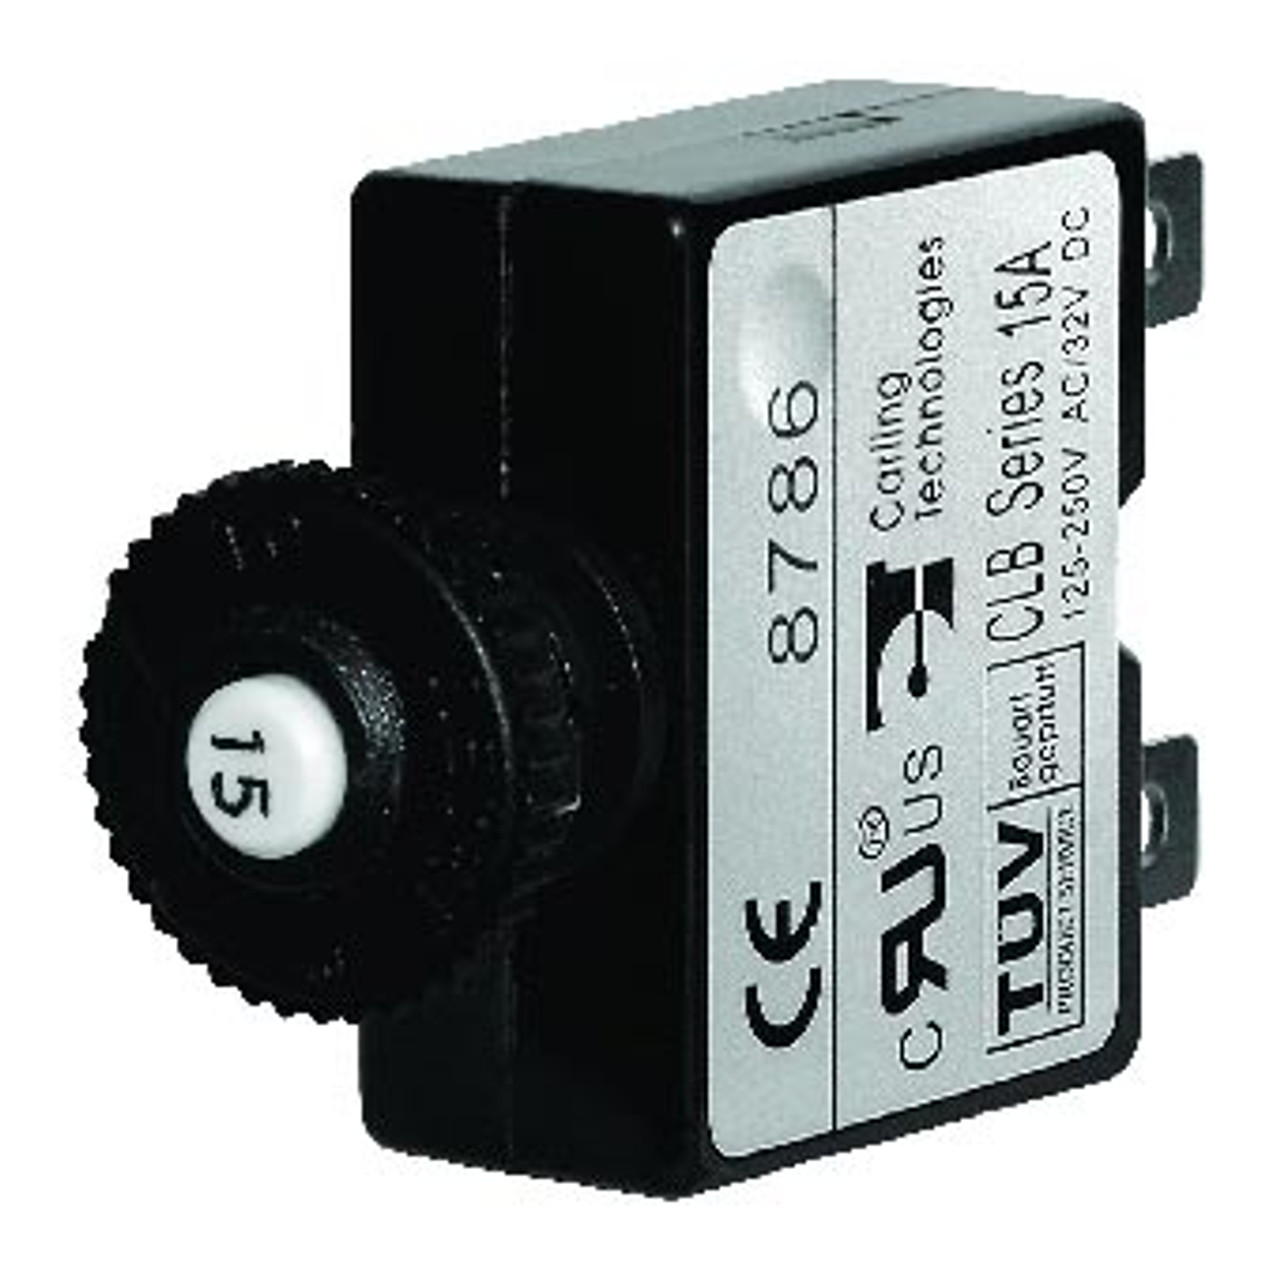 CIRCUIT BREAKER 15 AMP PUSH BUTTON QUICK CONNECT